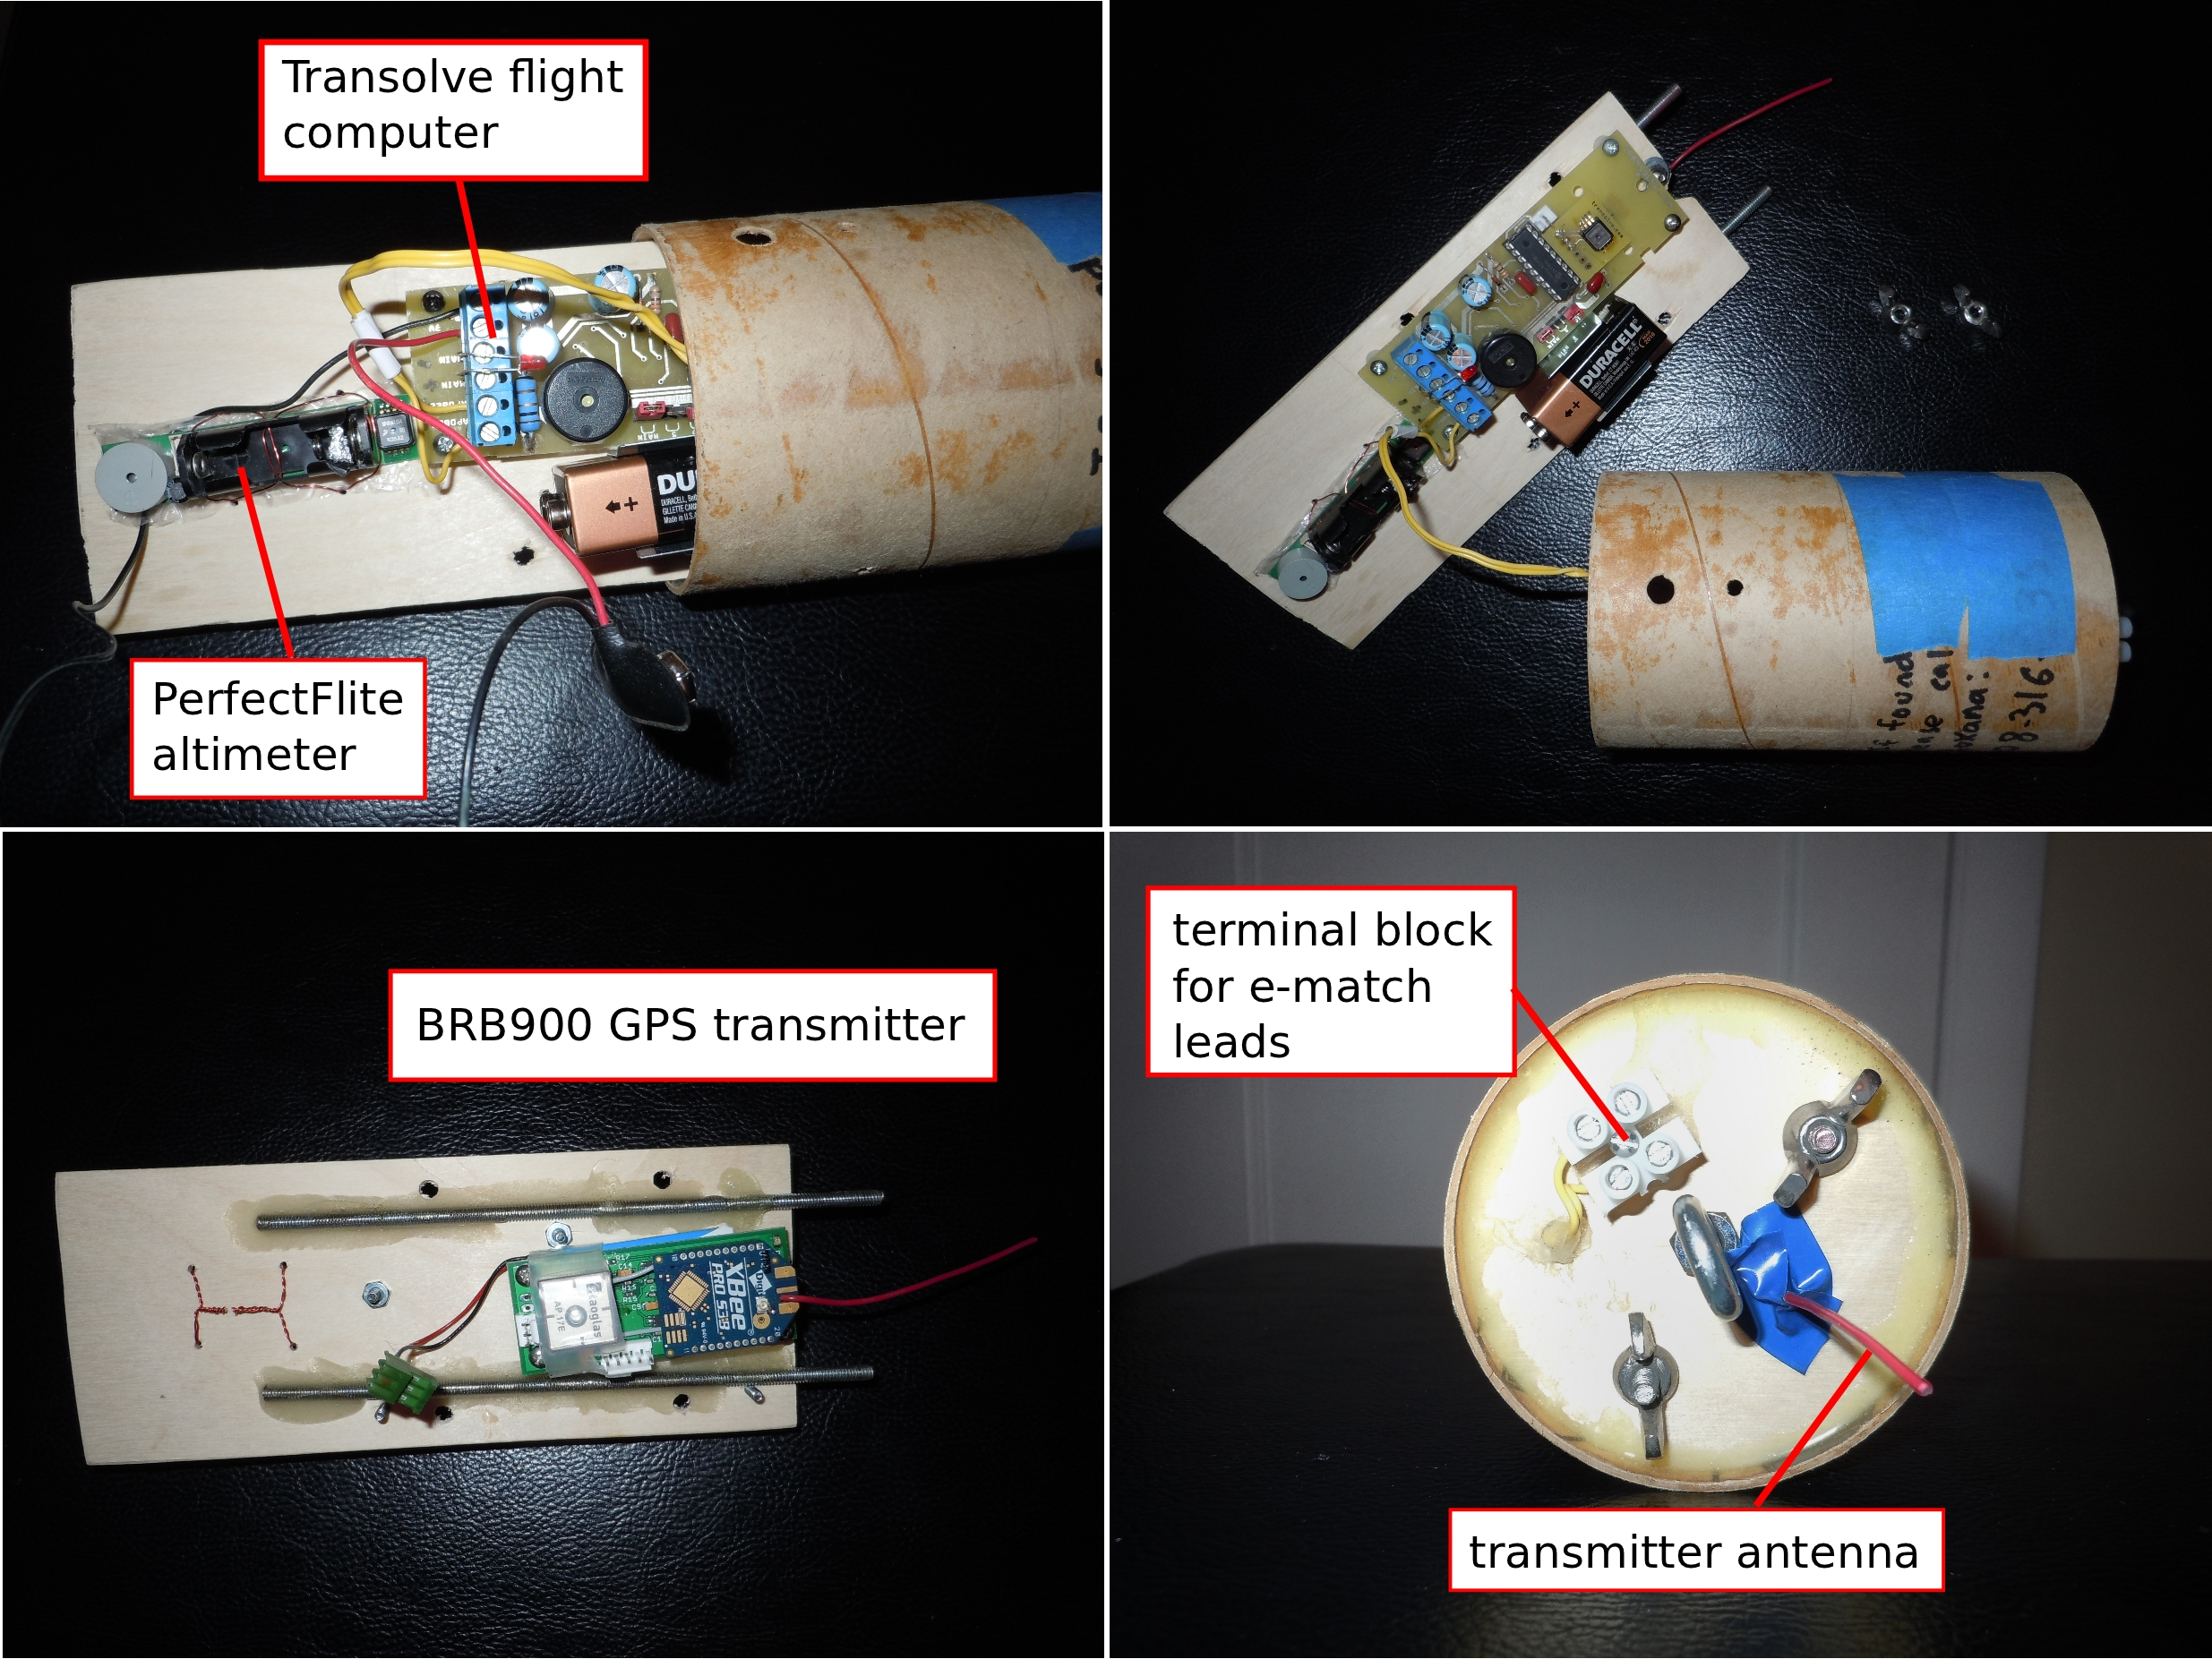 Quantum Leap Ii Timers For Rocket Ejection Figure 2 Close Up Of The Sustainer Electronics Bay Showing Perfectflite Alt15k Wd Altimeter Transolve Pk6 Flight Computer And Bigredbee Brb900 Gps